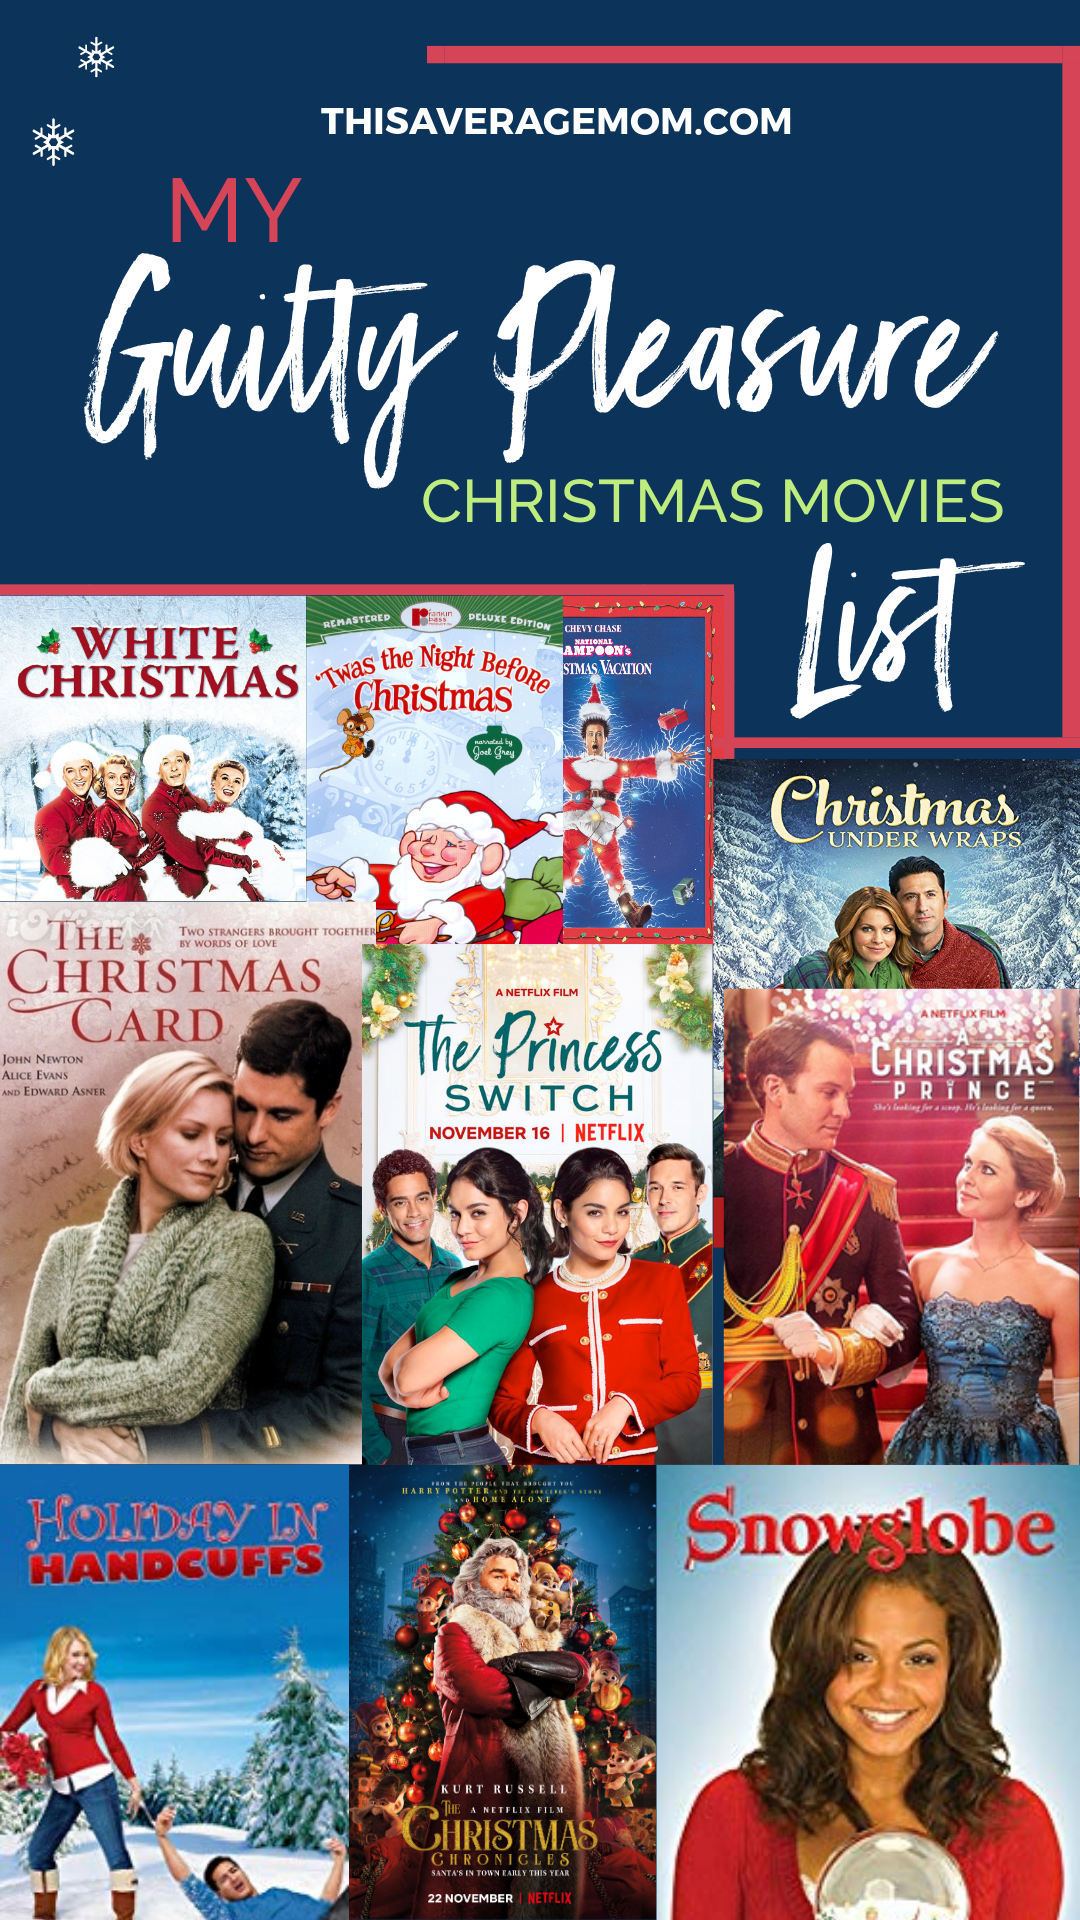 I'm talking about all the corny, amazing Christmas movies on the blog today! From Hallmark, to Netflix, to DVDs and On Demand, I've got you!! Grab your fuzzy slippers, cozy blanket, and hot cocoa because it's time to snuggle up with a good holiday movie!! FA LA LA LA LA!